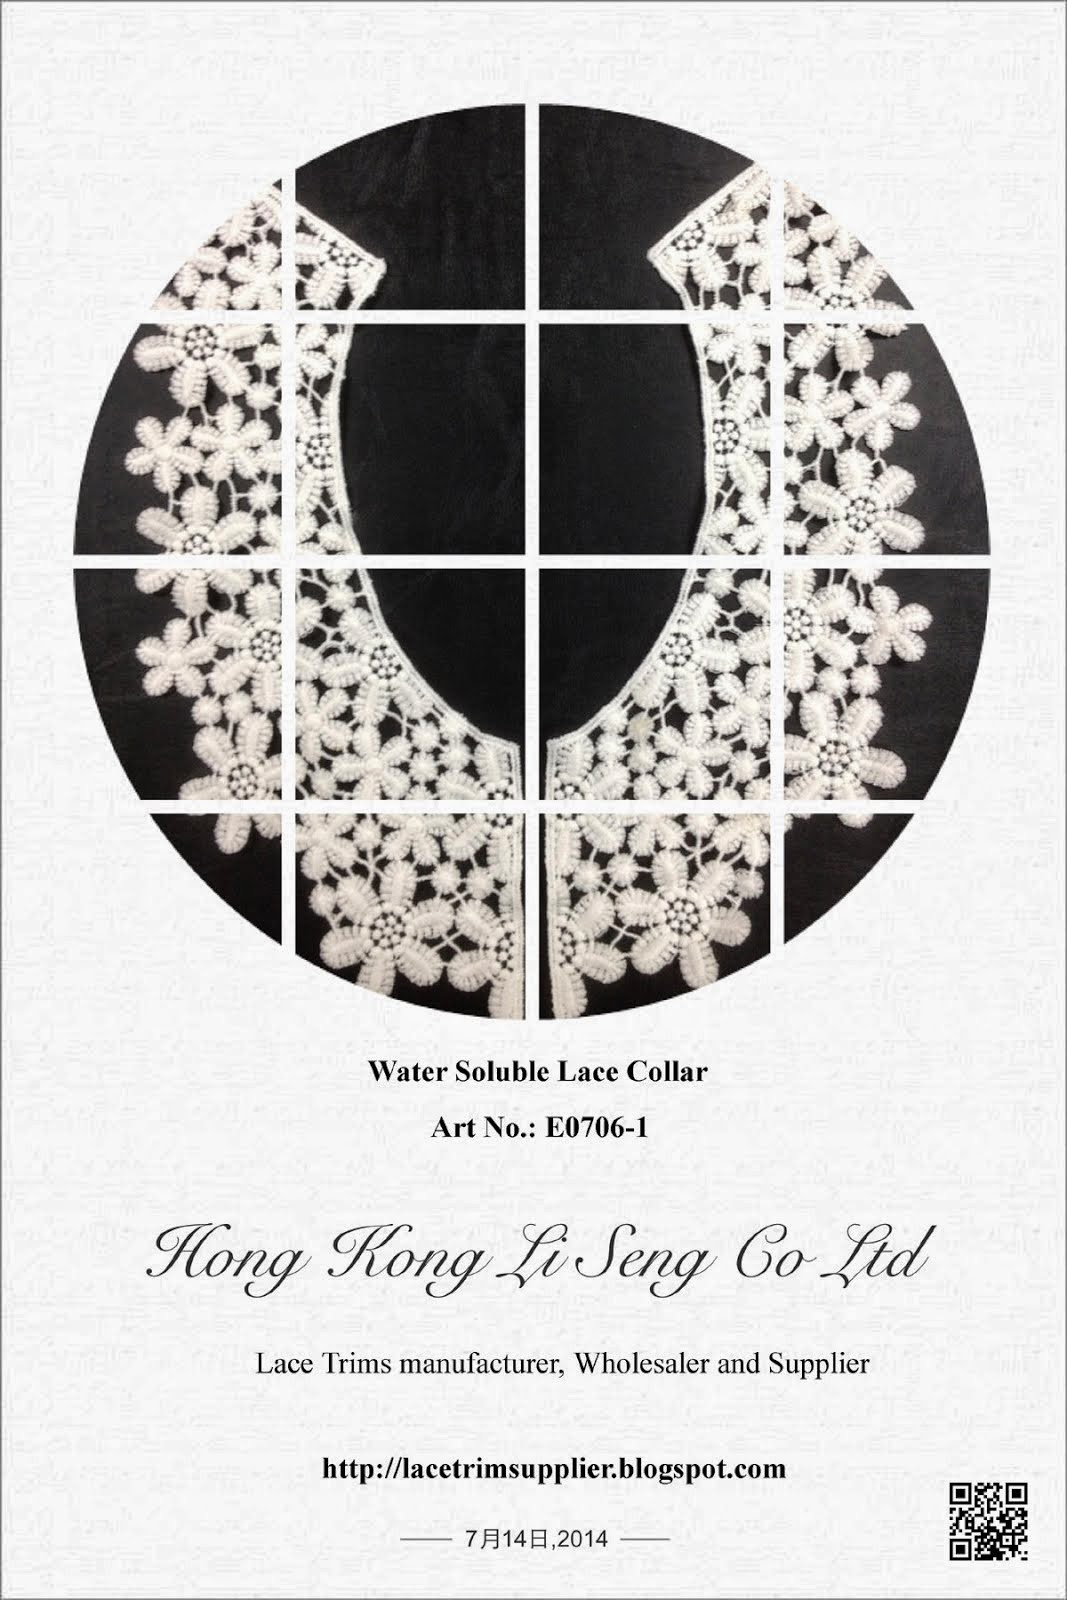 "New Embroidered Cotton Lace Collar Manufacturer Wholesaler and Supplier "" Hong Kong Li Seng Co Ltd"